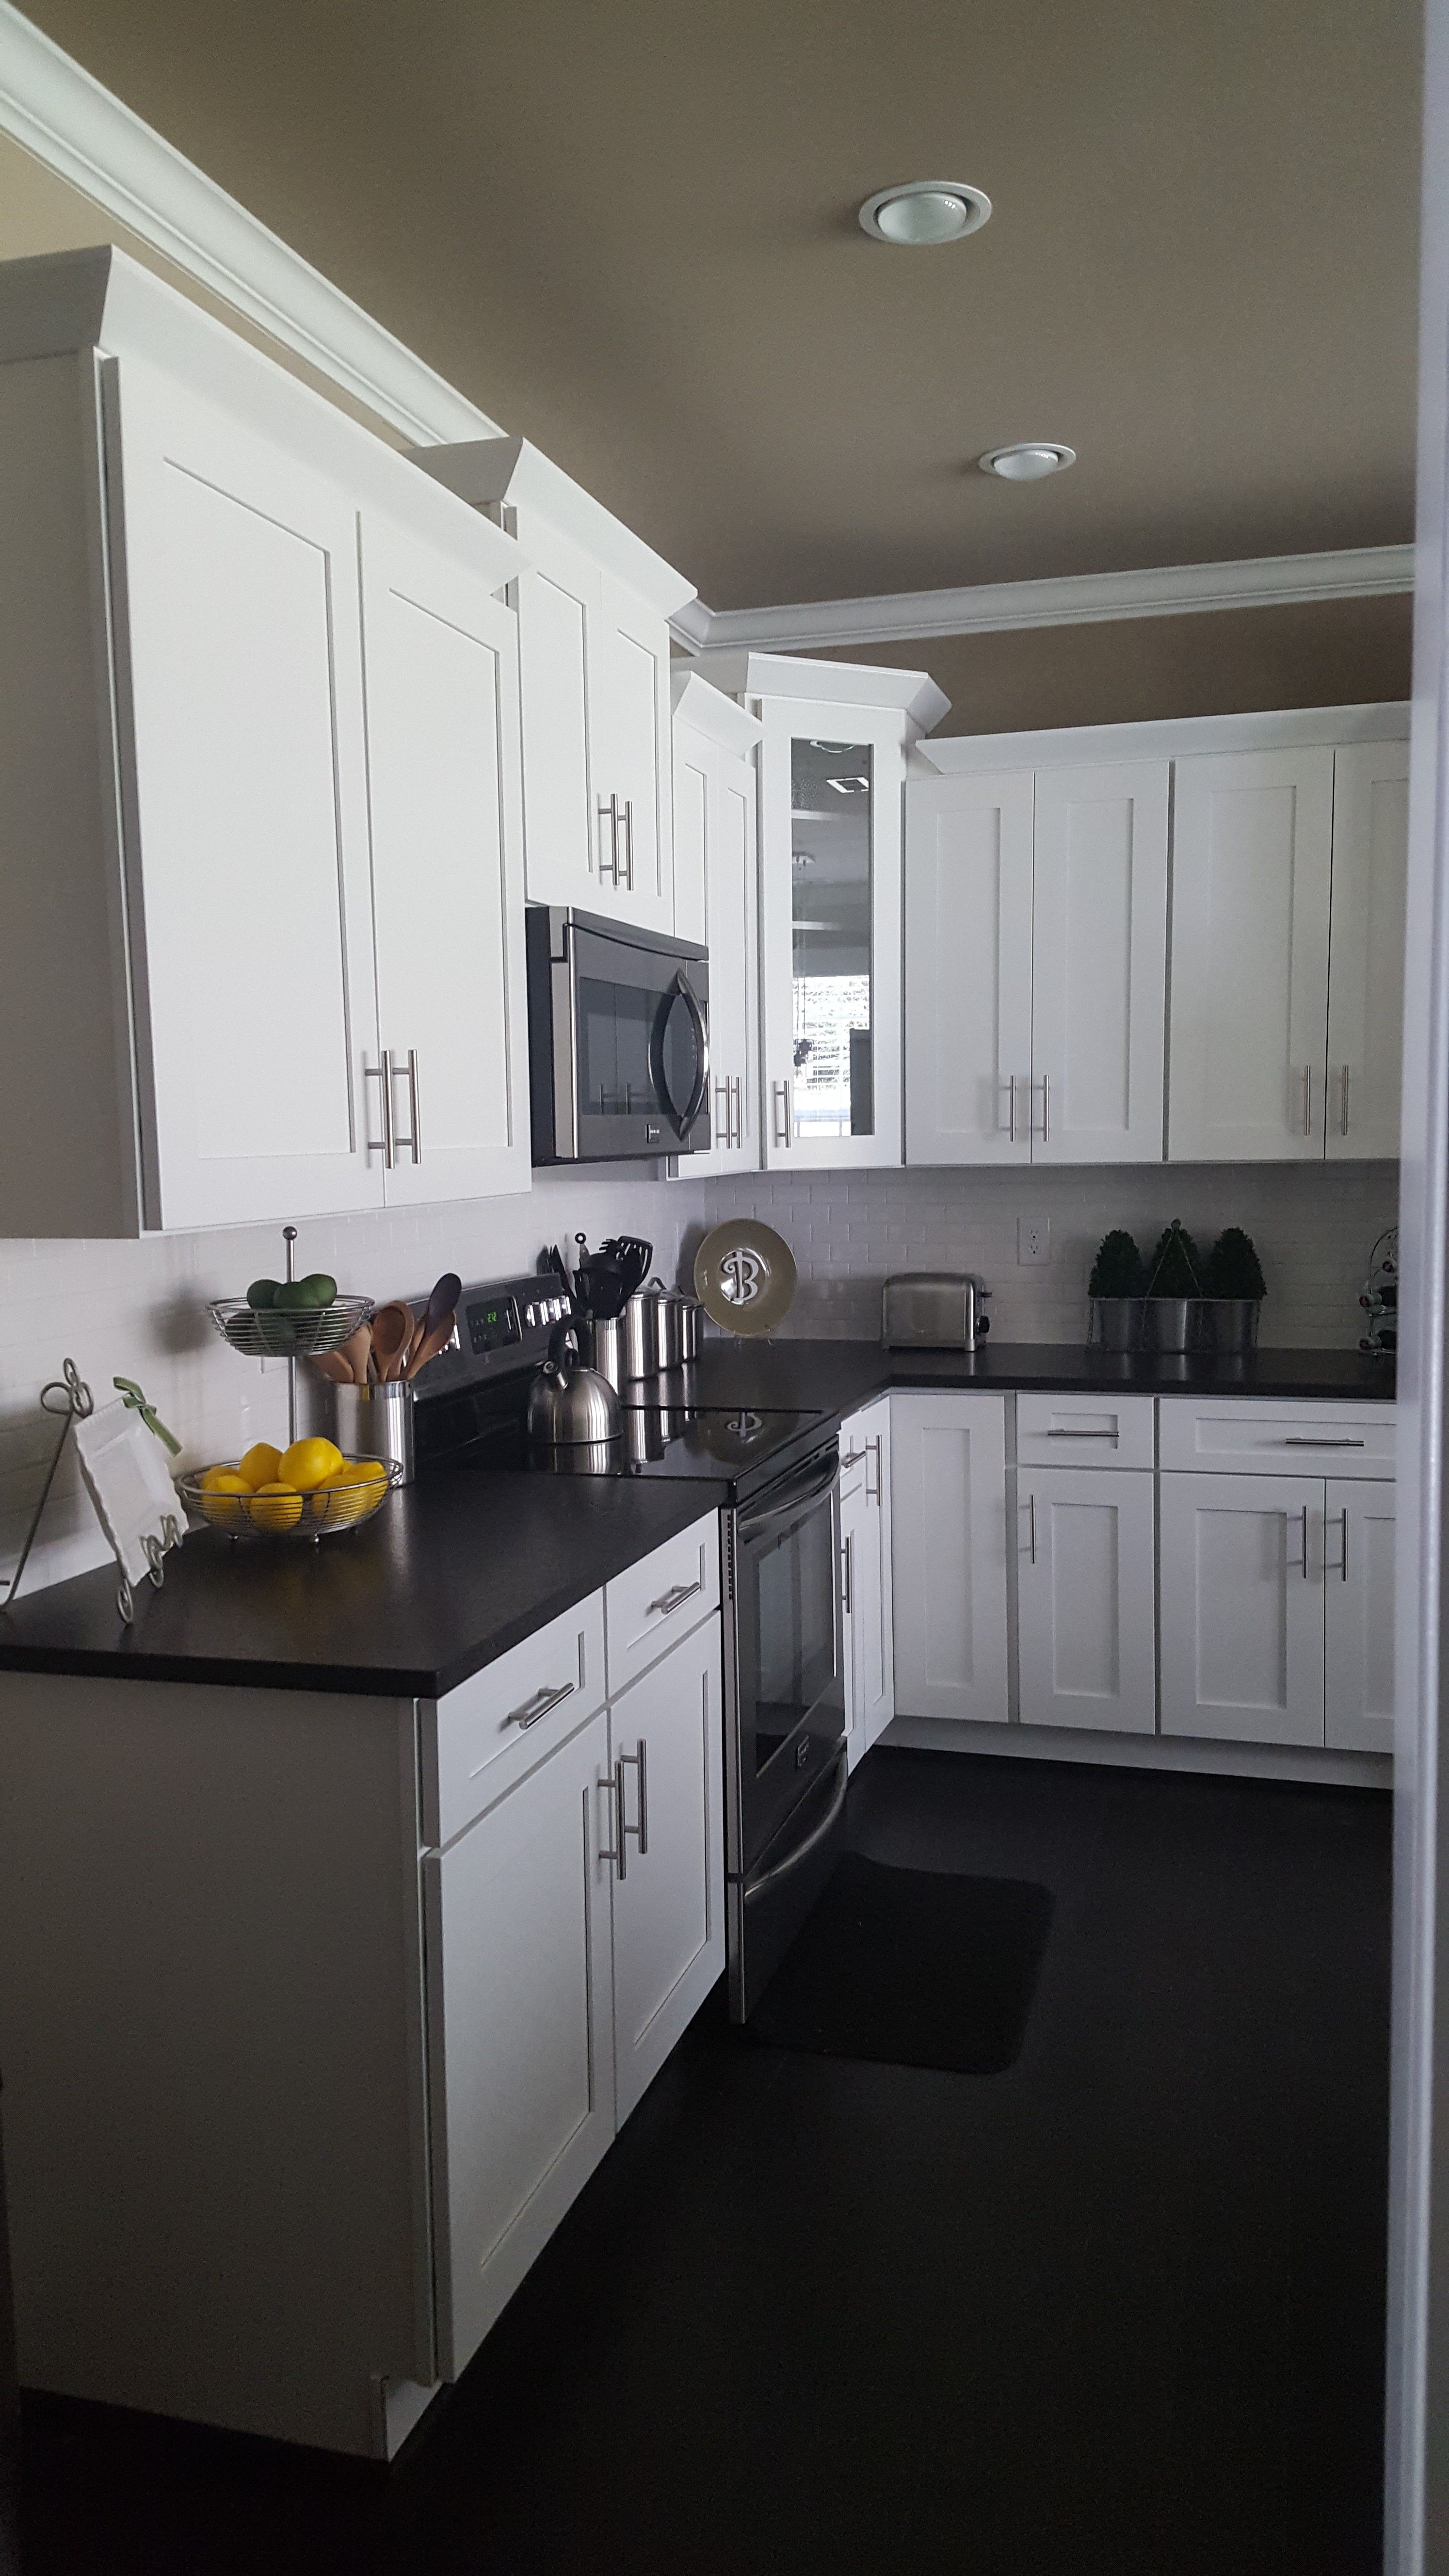 White Shaker Cabinets With Black Pearl Leathered Granite Glossy White Subway Tile And Dark Cottage Kitchen Cabinets Kitchen Design Color Kitchen Design Small